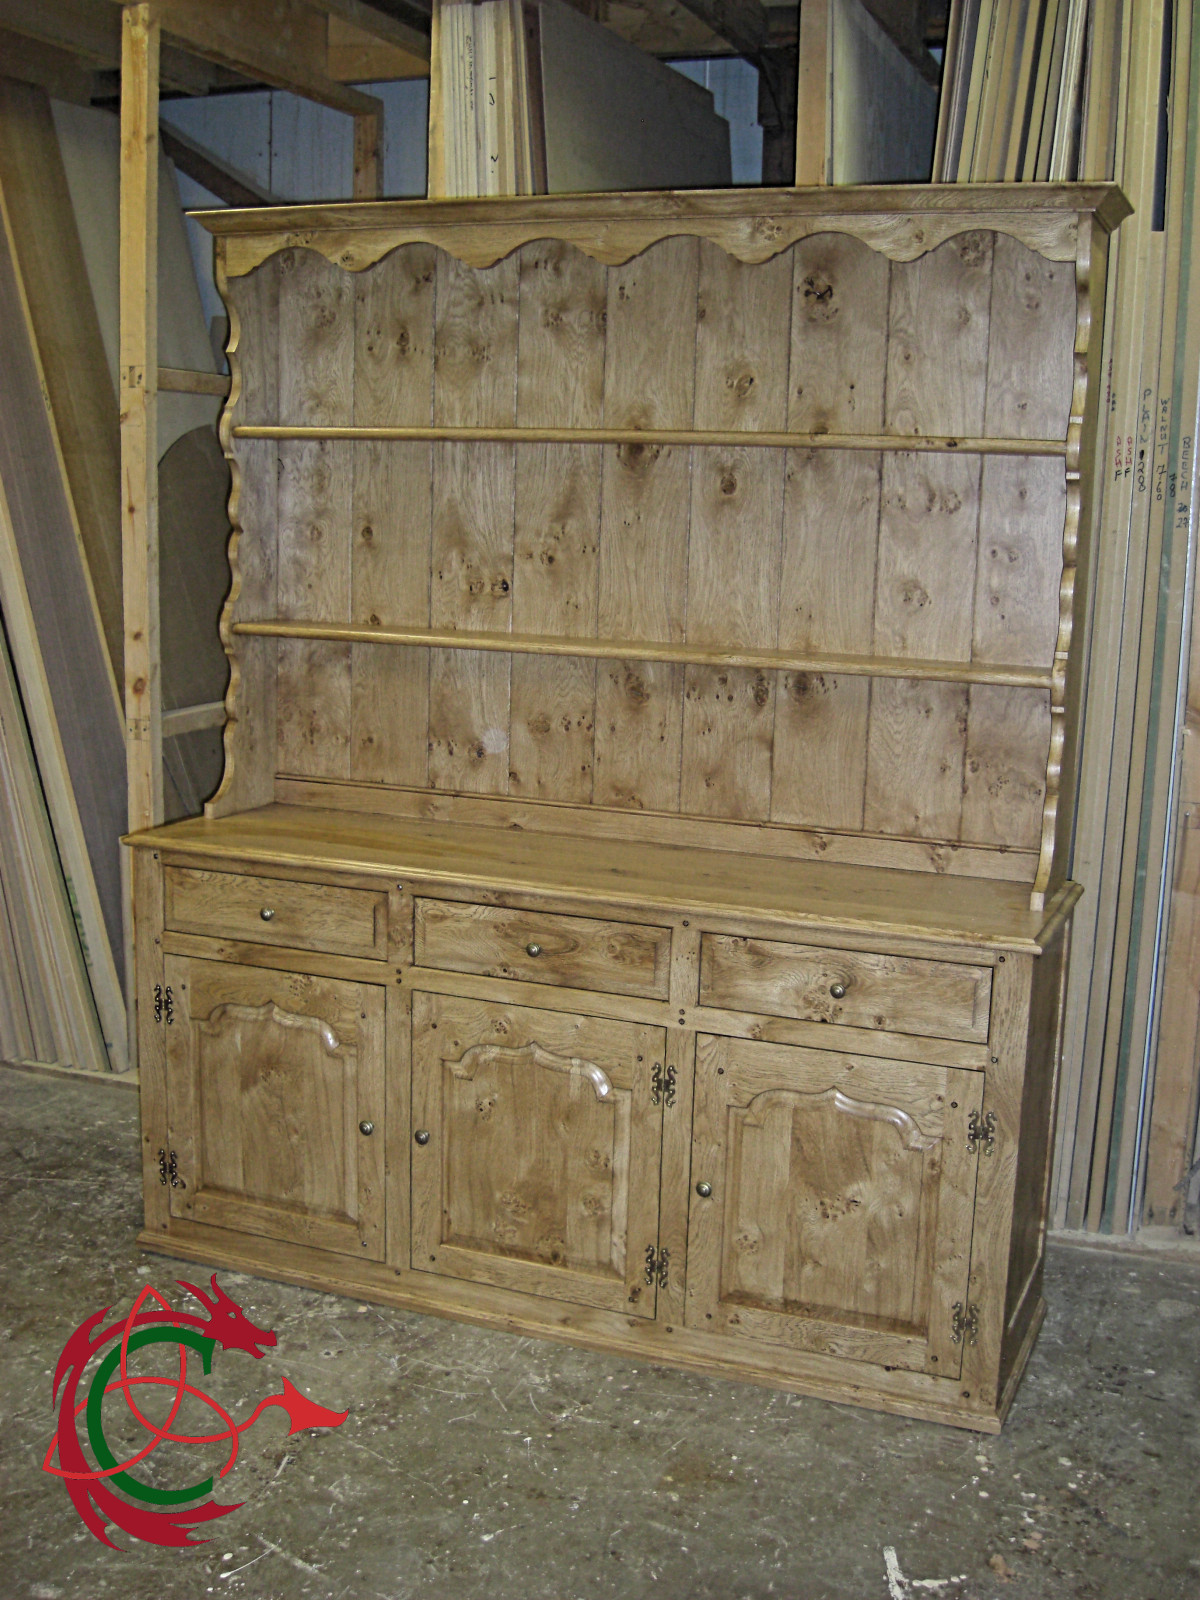 Welsh dresser: top, rack with scrollwork; bottom, sideboard with cupboards and drawers